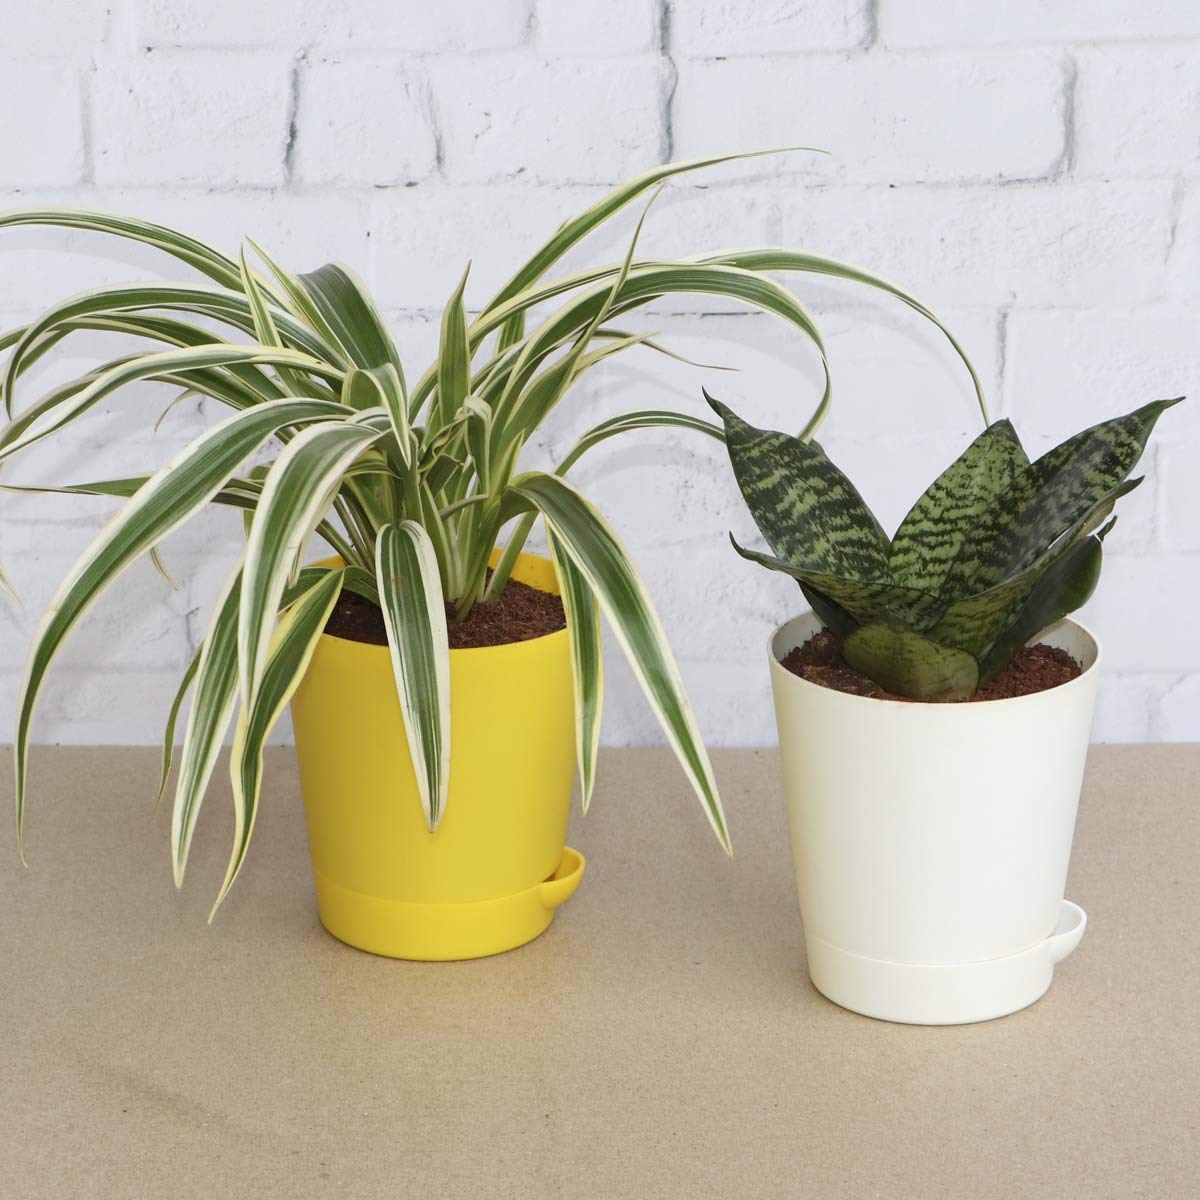 Ugaoo Indoor Air Purifier Plants For Home With Pot - Spider Plant & Sanseveria Green (B07TS1MRXB) Amazon Price History, Amazon Price Tracker